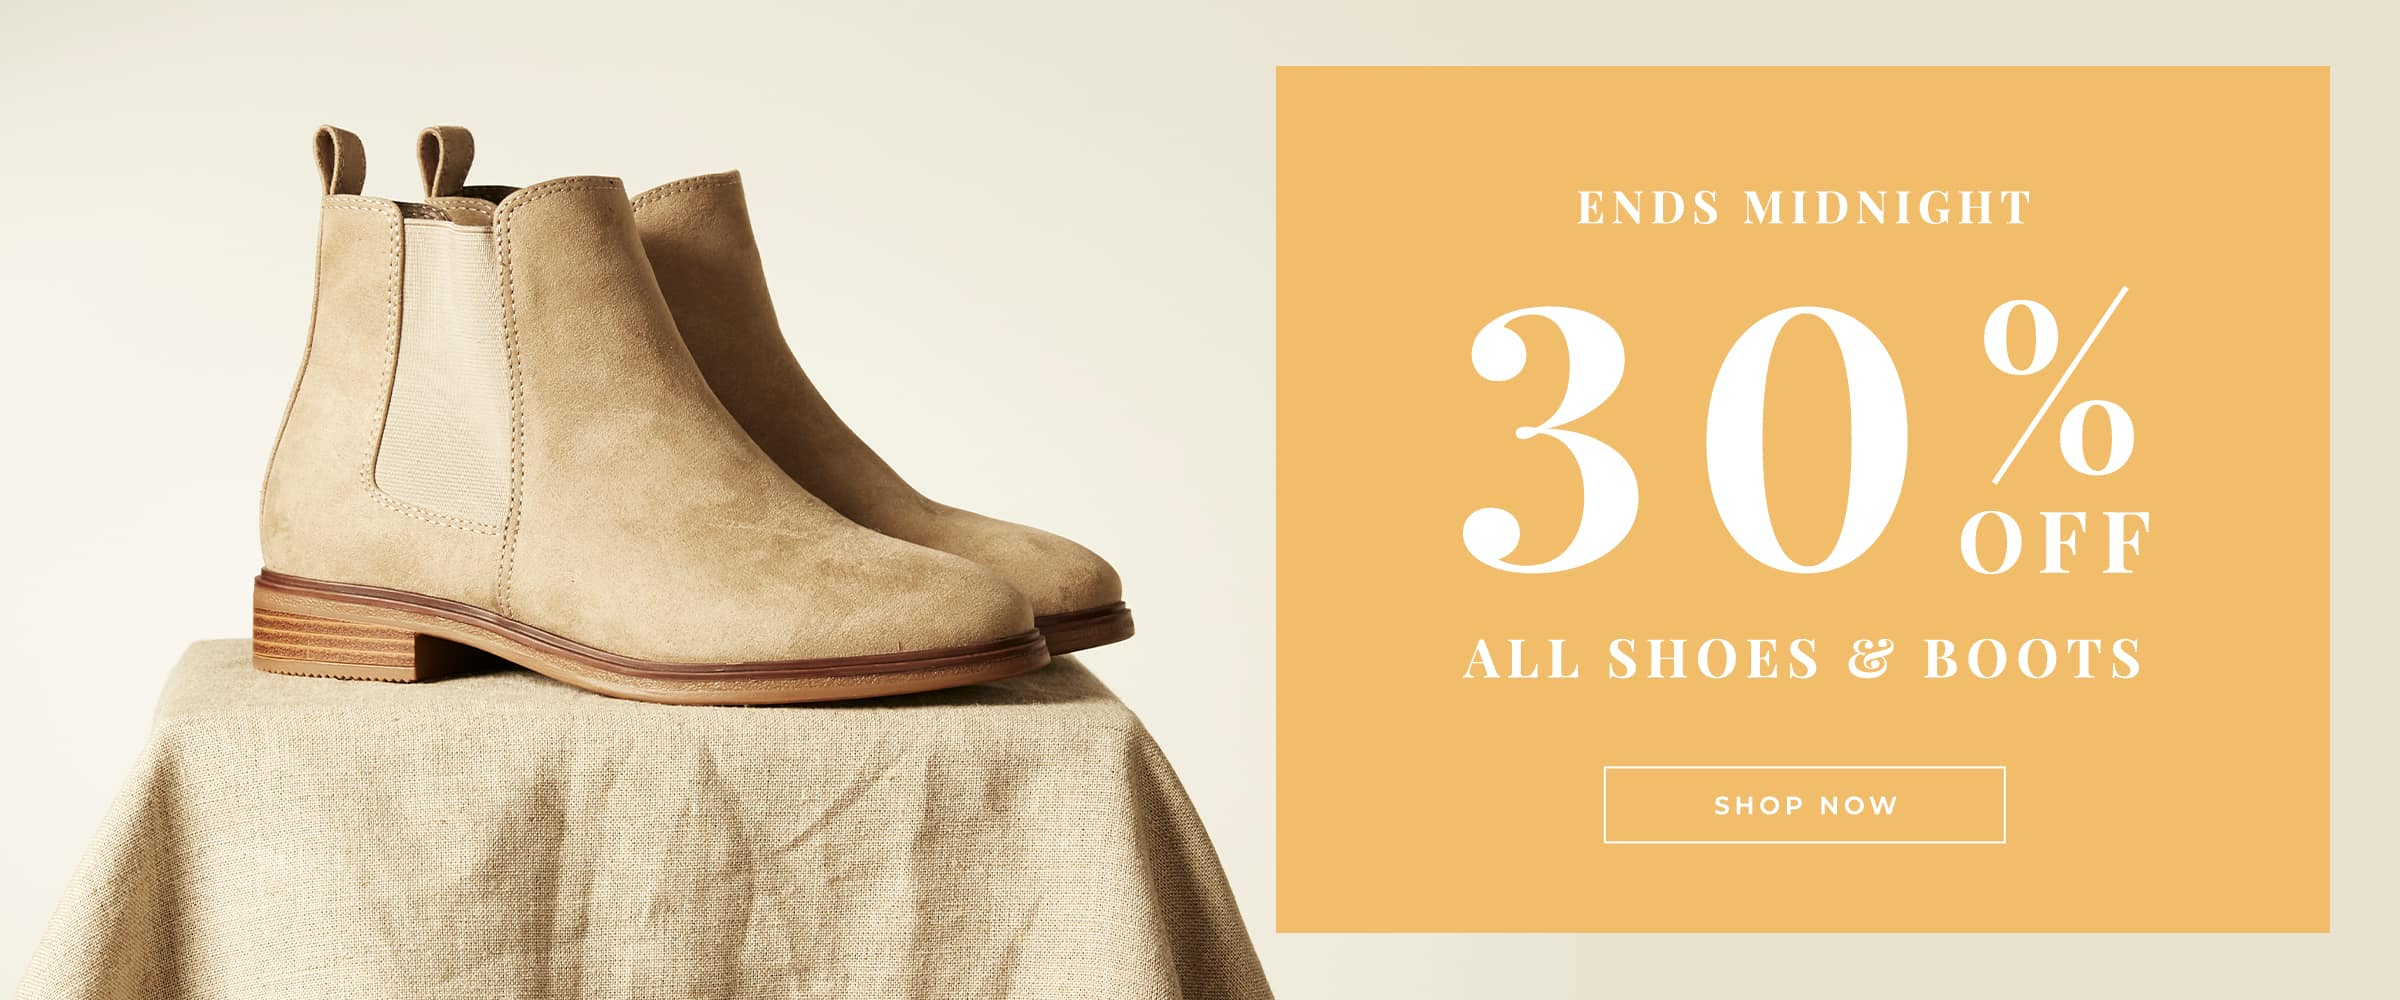 Evans Clothing Evans Clothing: 30% off all women's shoes & boots